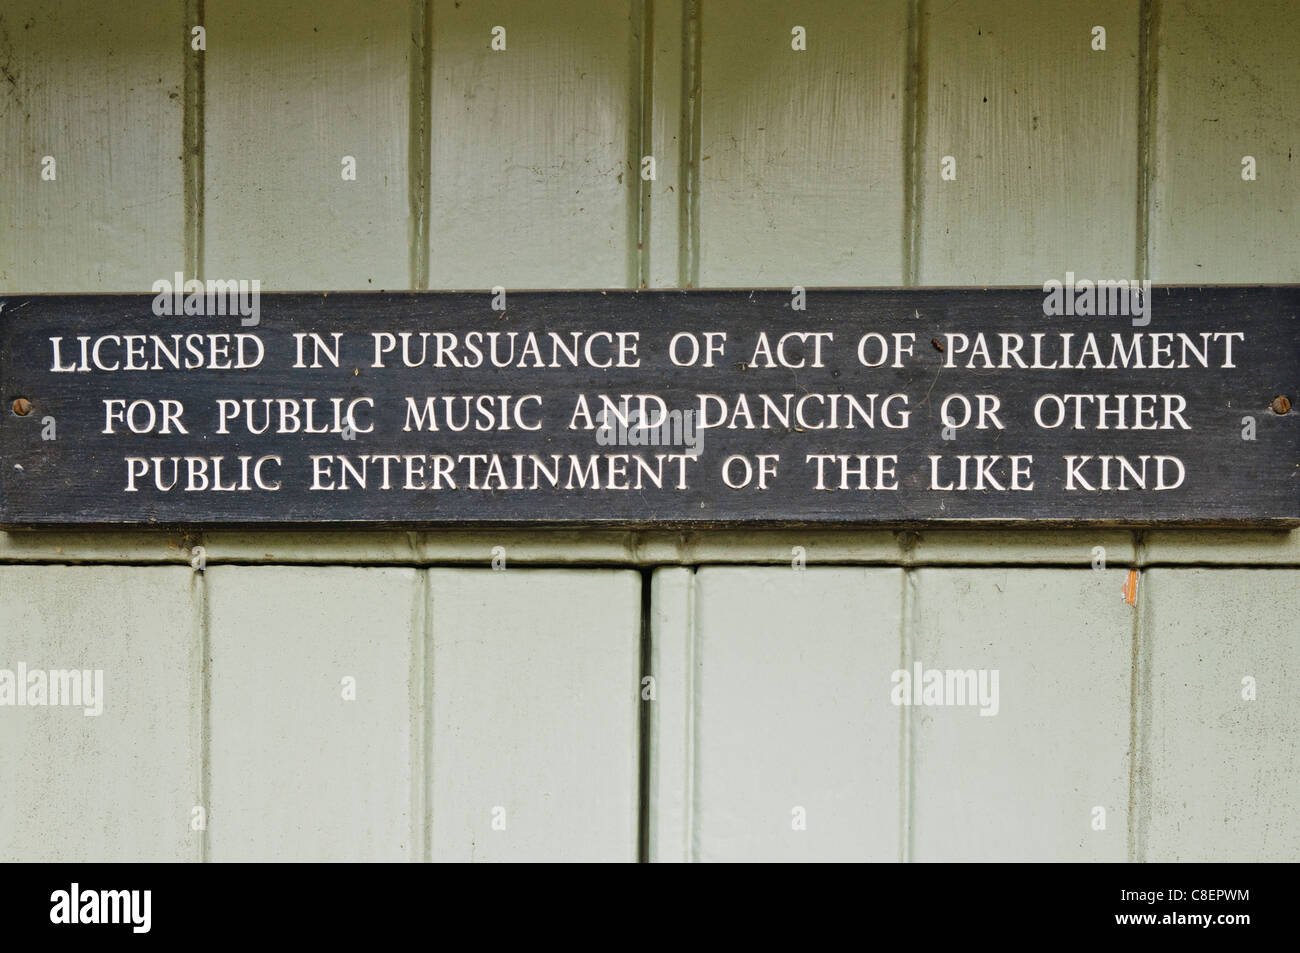 Sign licencing premises for public music and dancing and other public entertainment - Stock Image